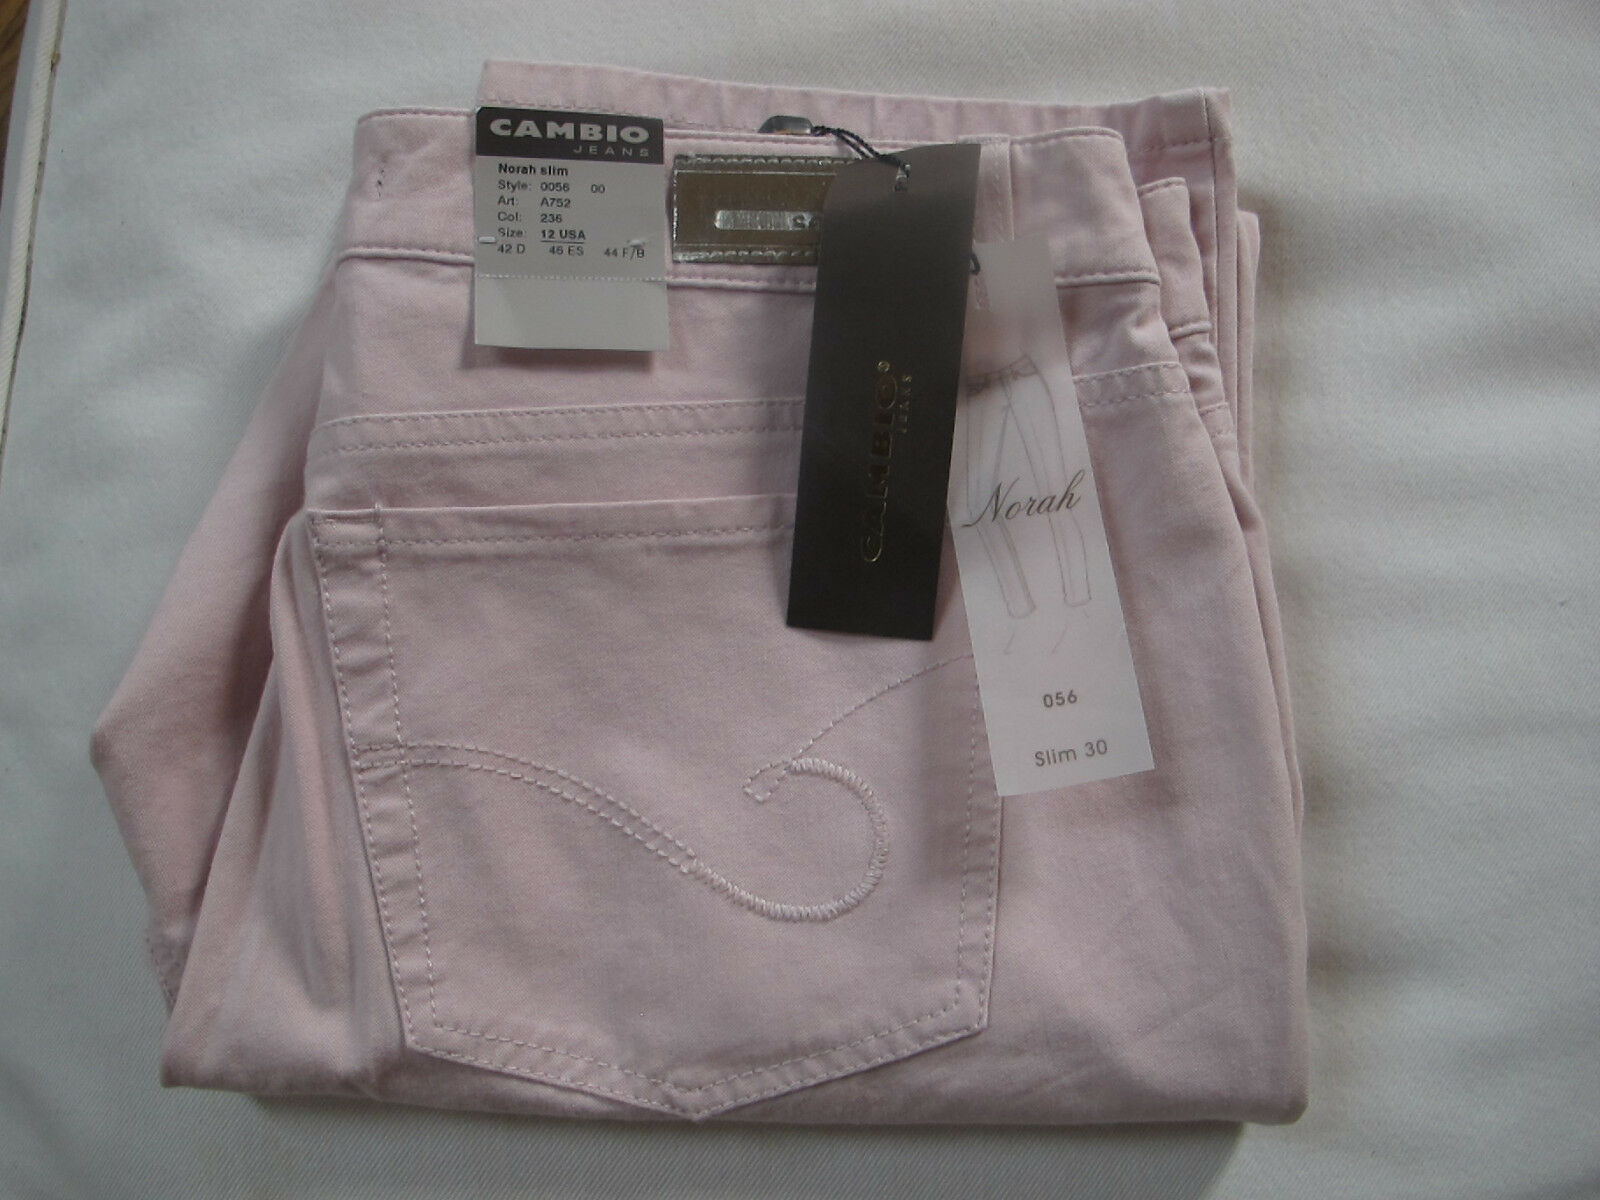 Cambio  Norah Slim   Pink stretch Jeans. .Women's Size 10. NWT.